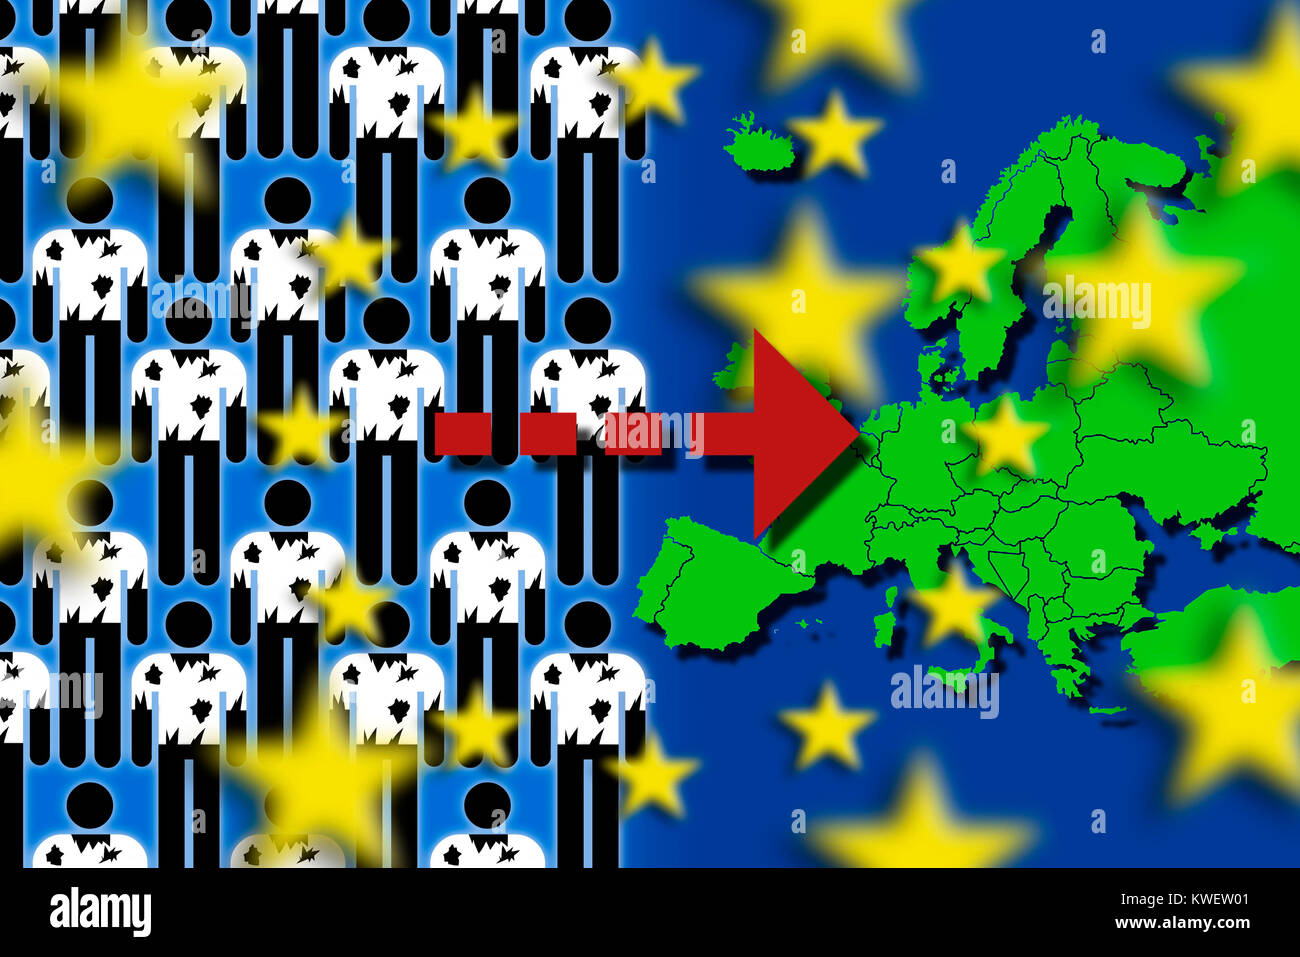 Refugees and European map, symbolic photo refugee's stream to Europe, Flüchtlinge und Europakarte, Symbolfoto - Stock Image